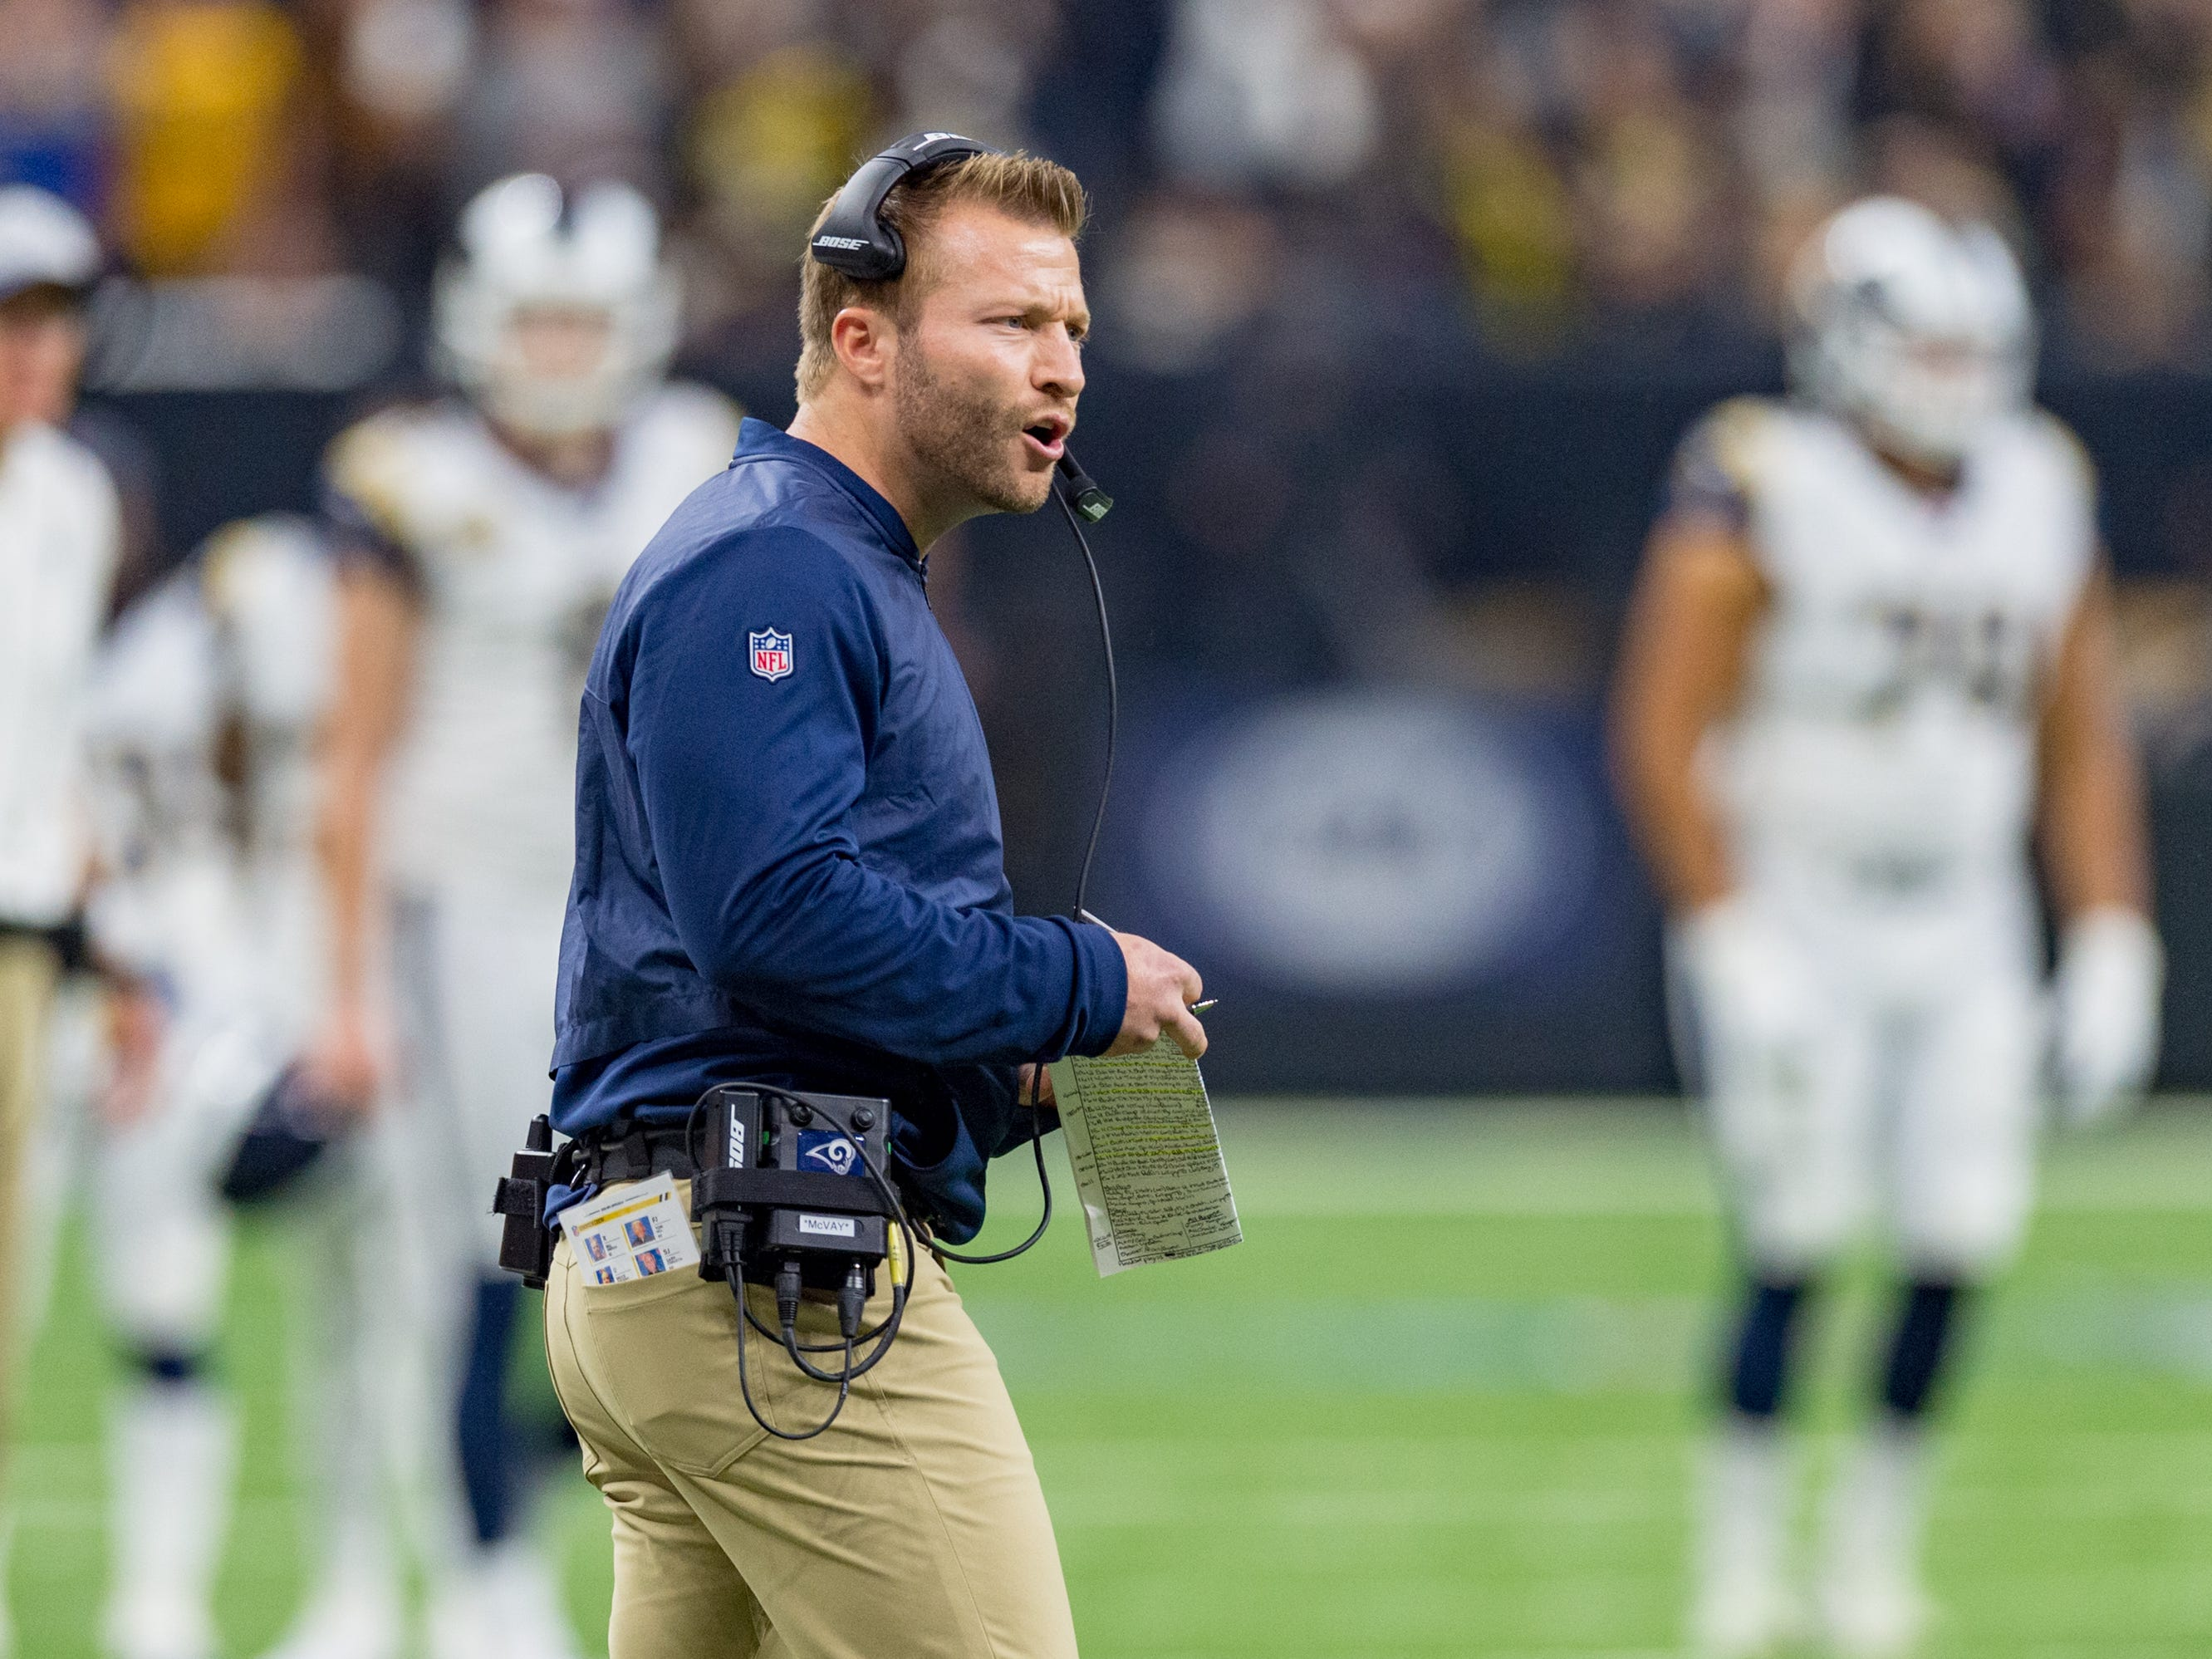 Rams head coach Sean Mcvay during the NFC Championship playoff football game between the New Orleans Saints and the Los Angeles Rams at the Mercedes-Benz Superdome in New Orleans. Sunday, Jan. 20, 2019.